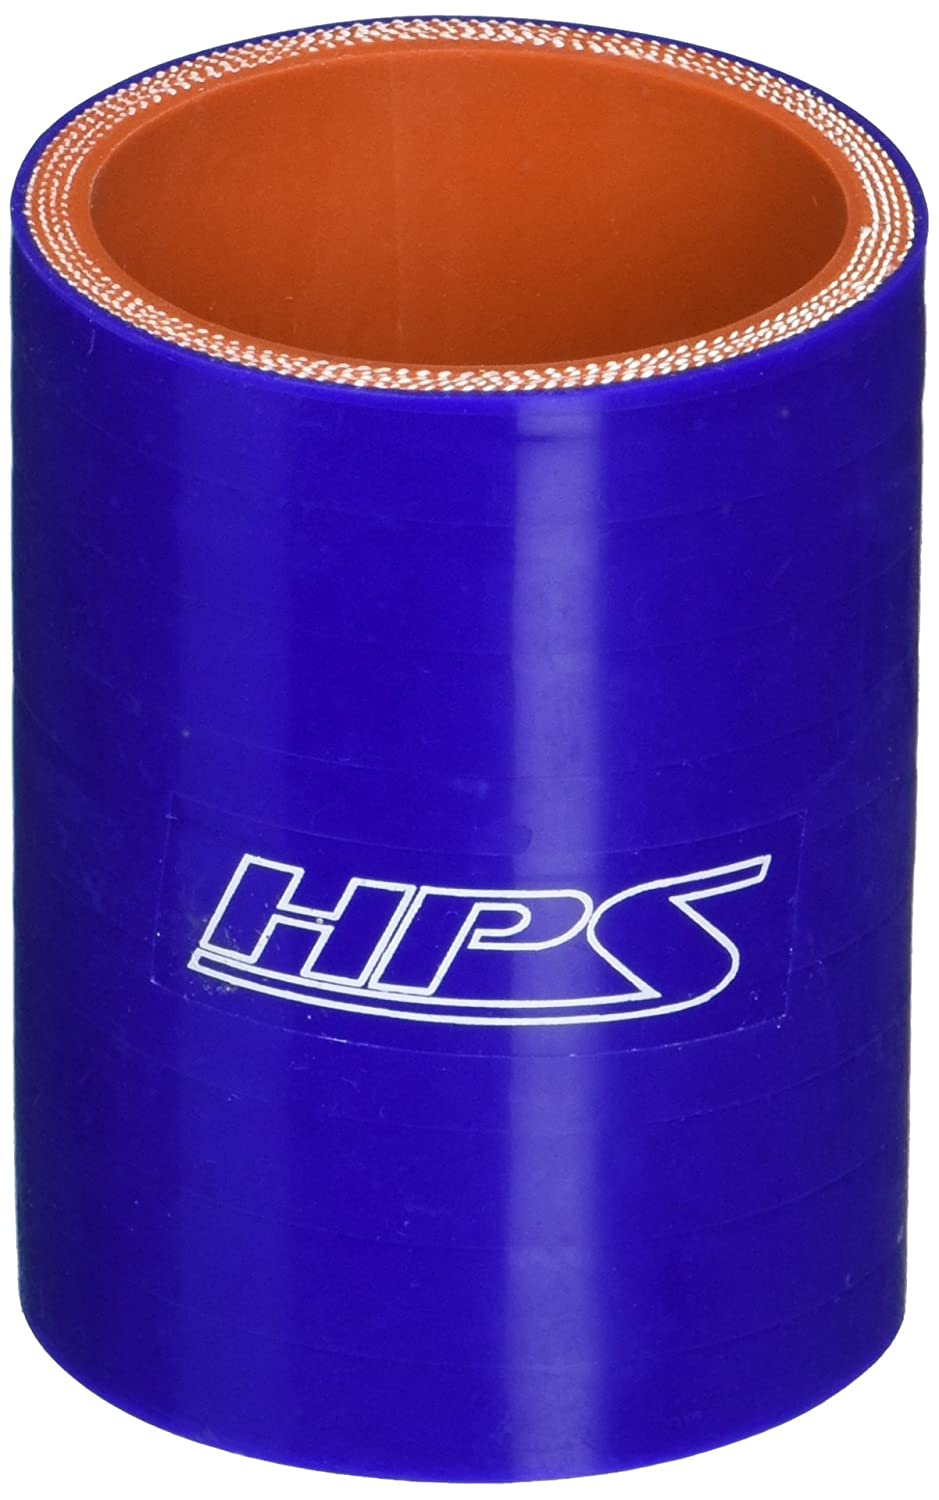 HPS HTSC-187-BLUE Silicone High Temperature 4-ply Reinforced Straight Coupler Hose, 100 PSI Maximum Pressure, 3' Length, 1-7/8' ID, Blue 3 Length 1-7/8 ID HPS Silicone Hoses